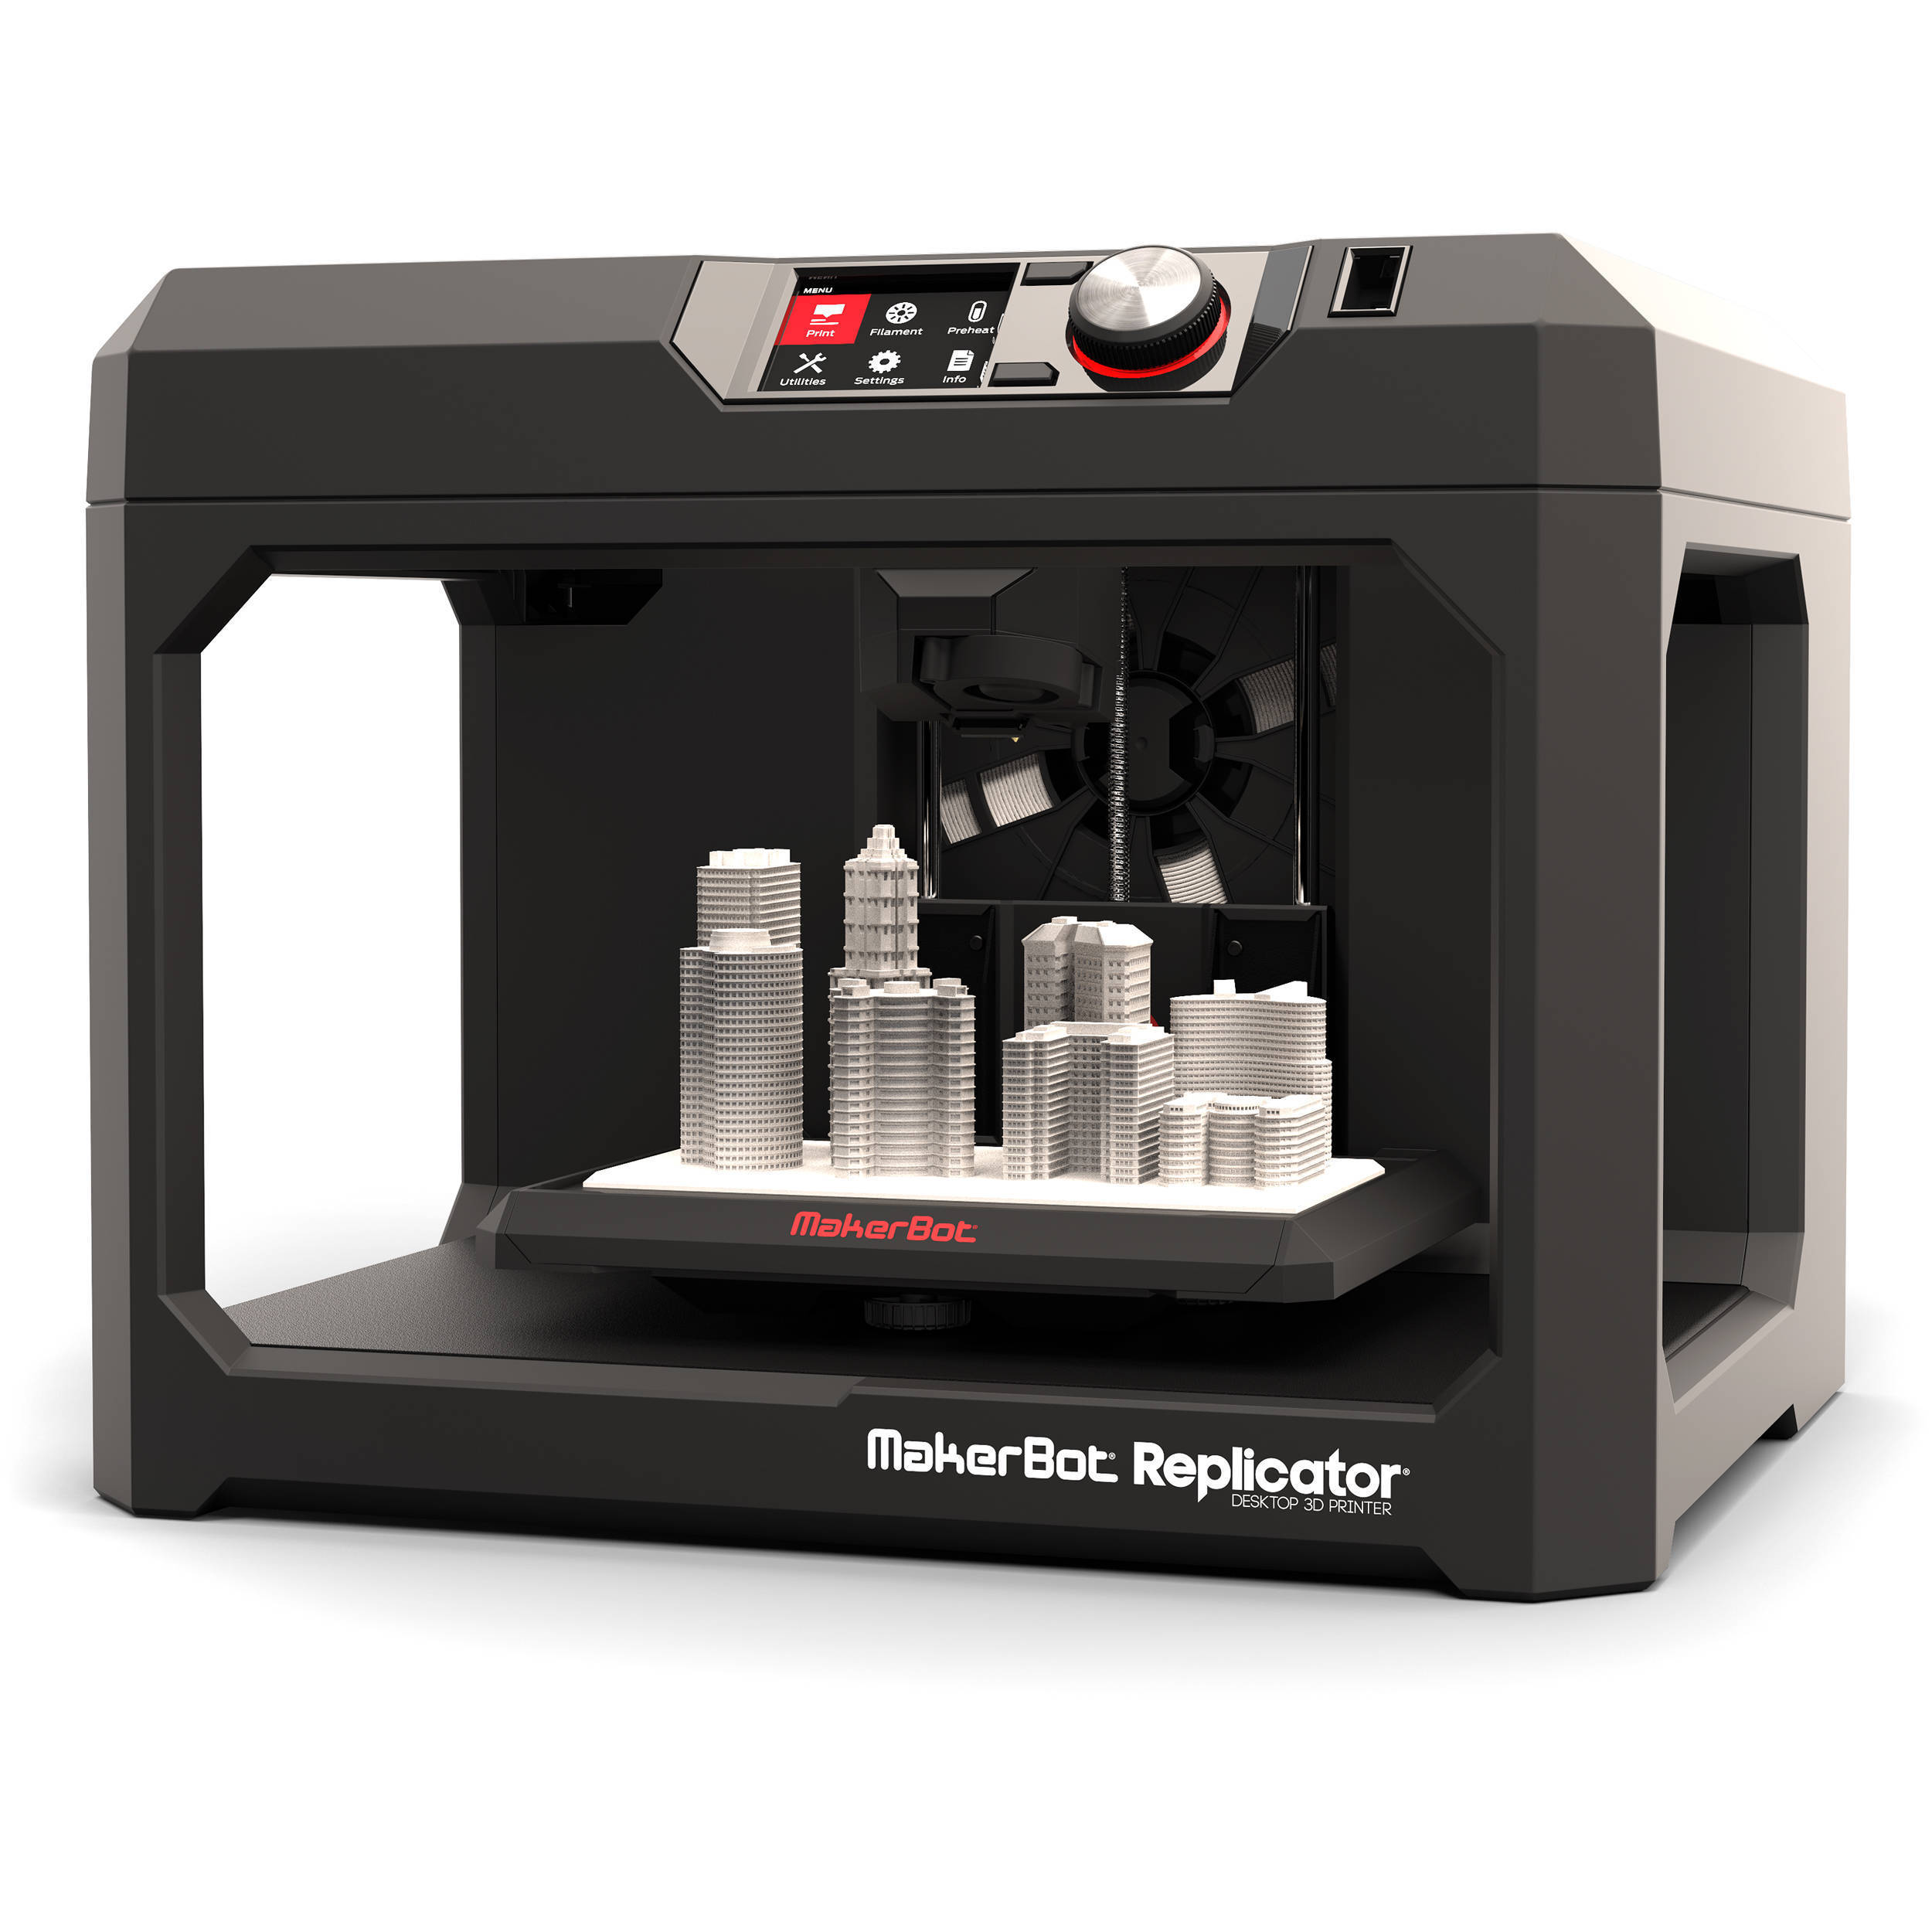 MakerBot Replicator 3D Printer Reviews & Specs